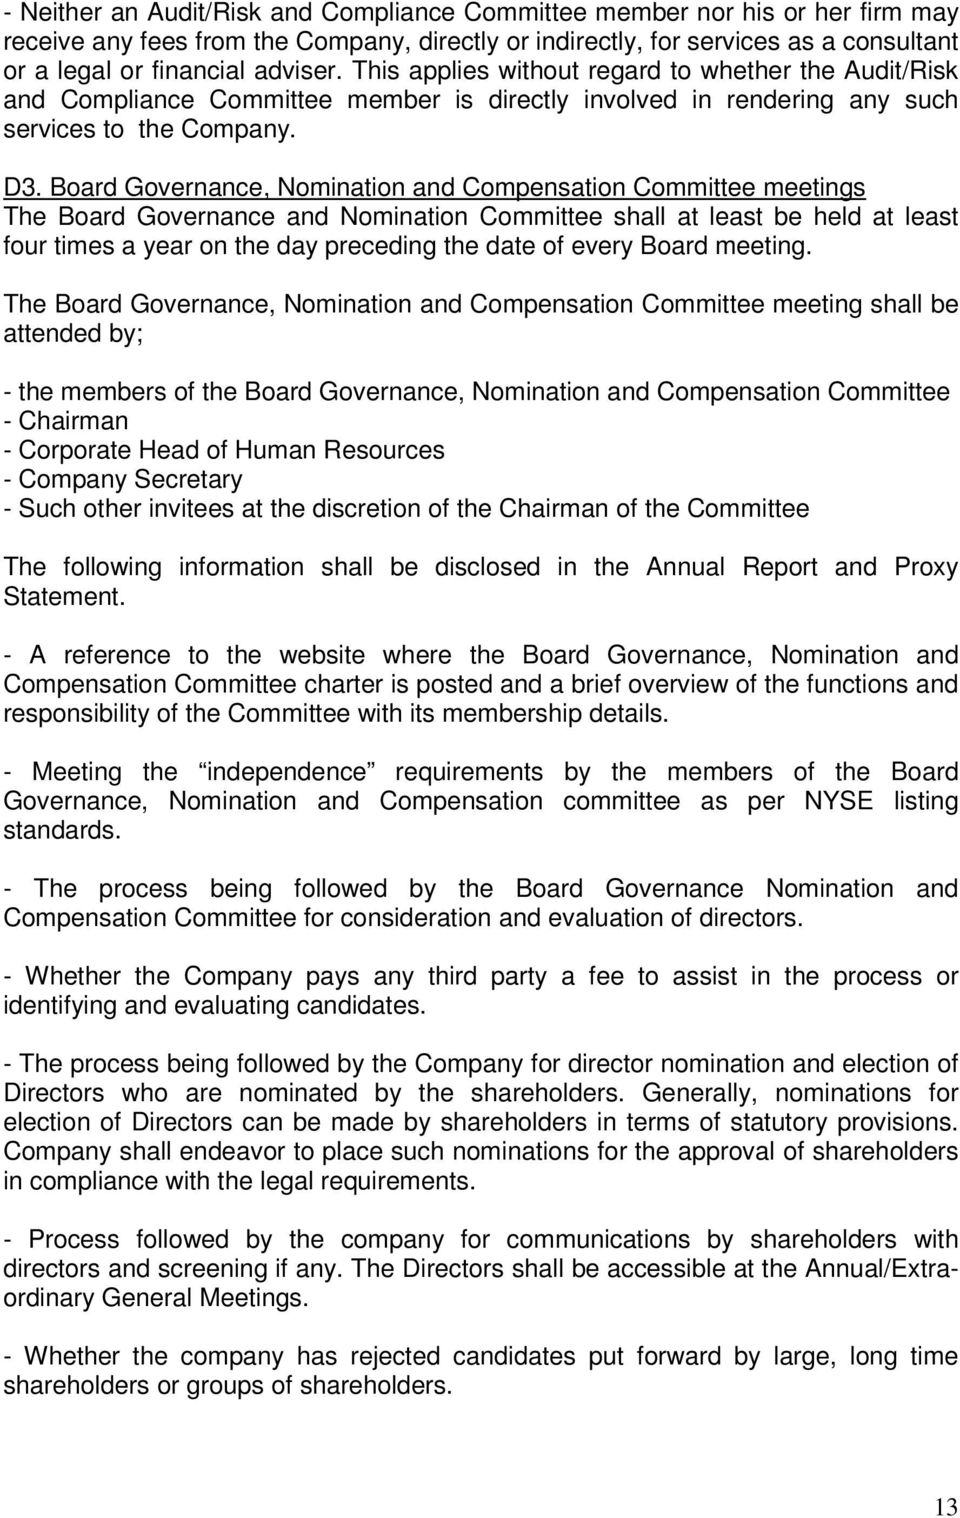 Board Governance, Nomination and Compensation Committee meetings The Board Governance and Nomination Committee shall at least be held at least four times a year on the day preceding the date of every